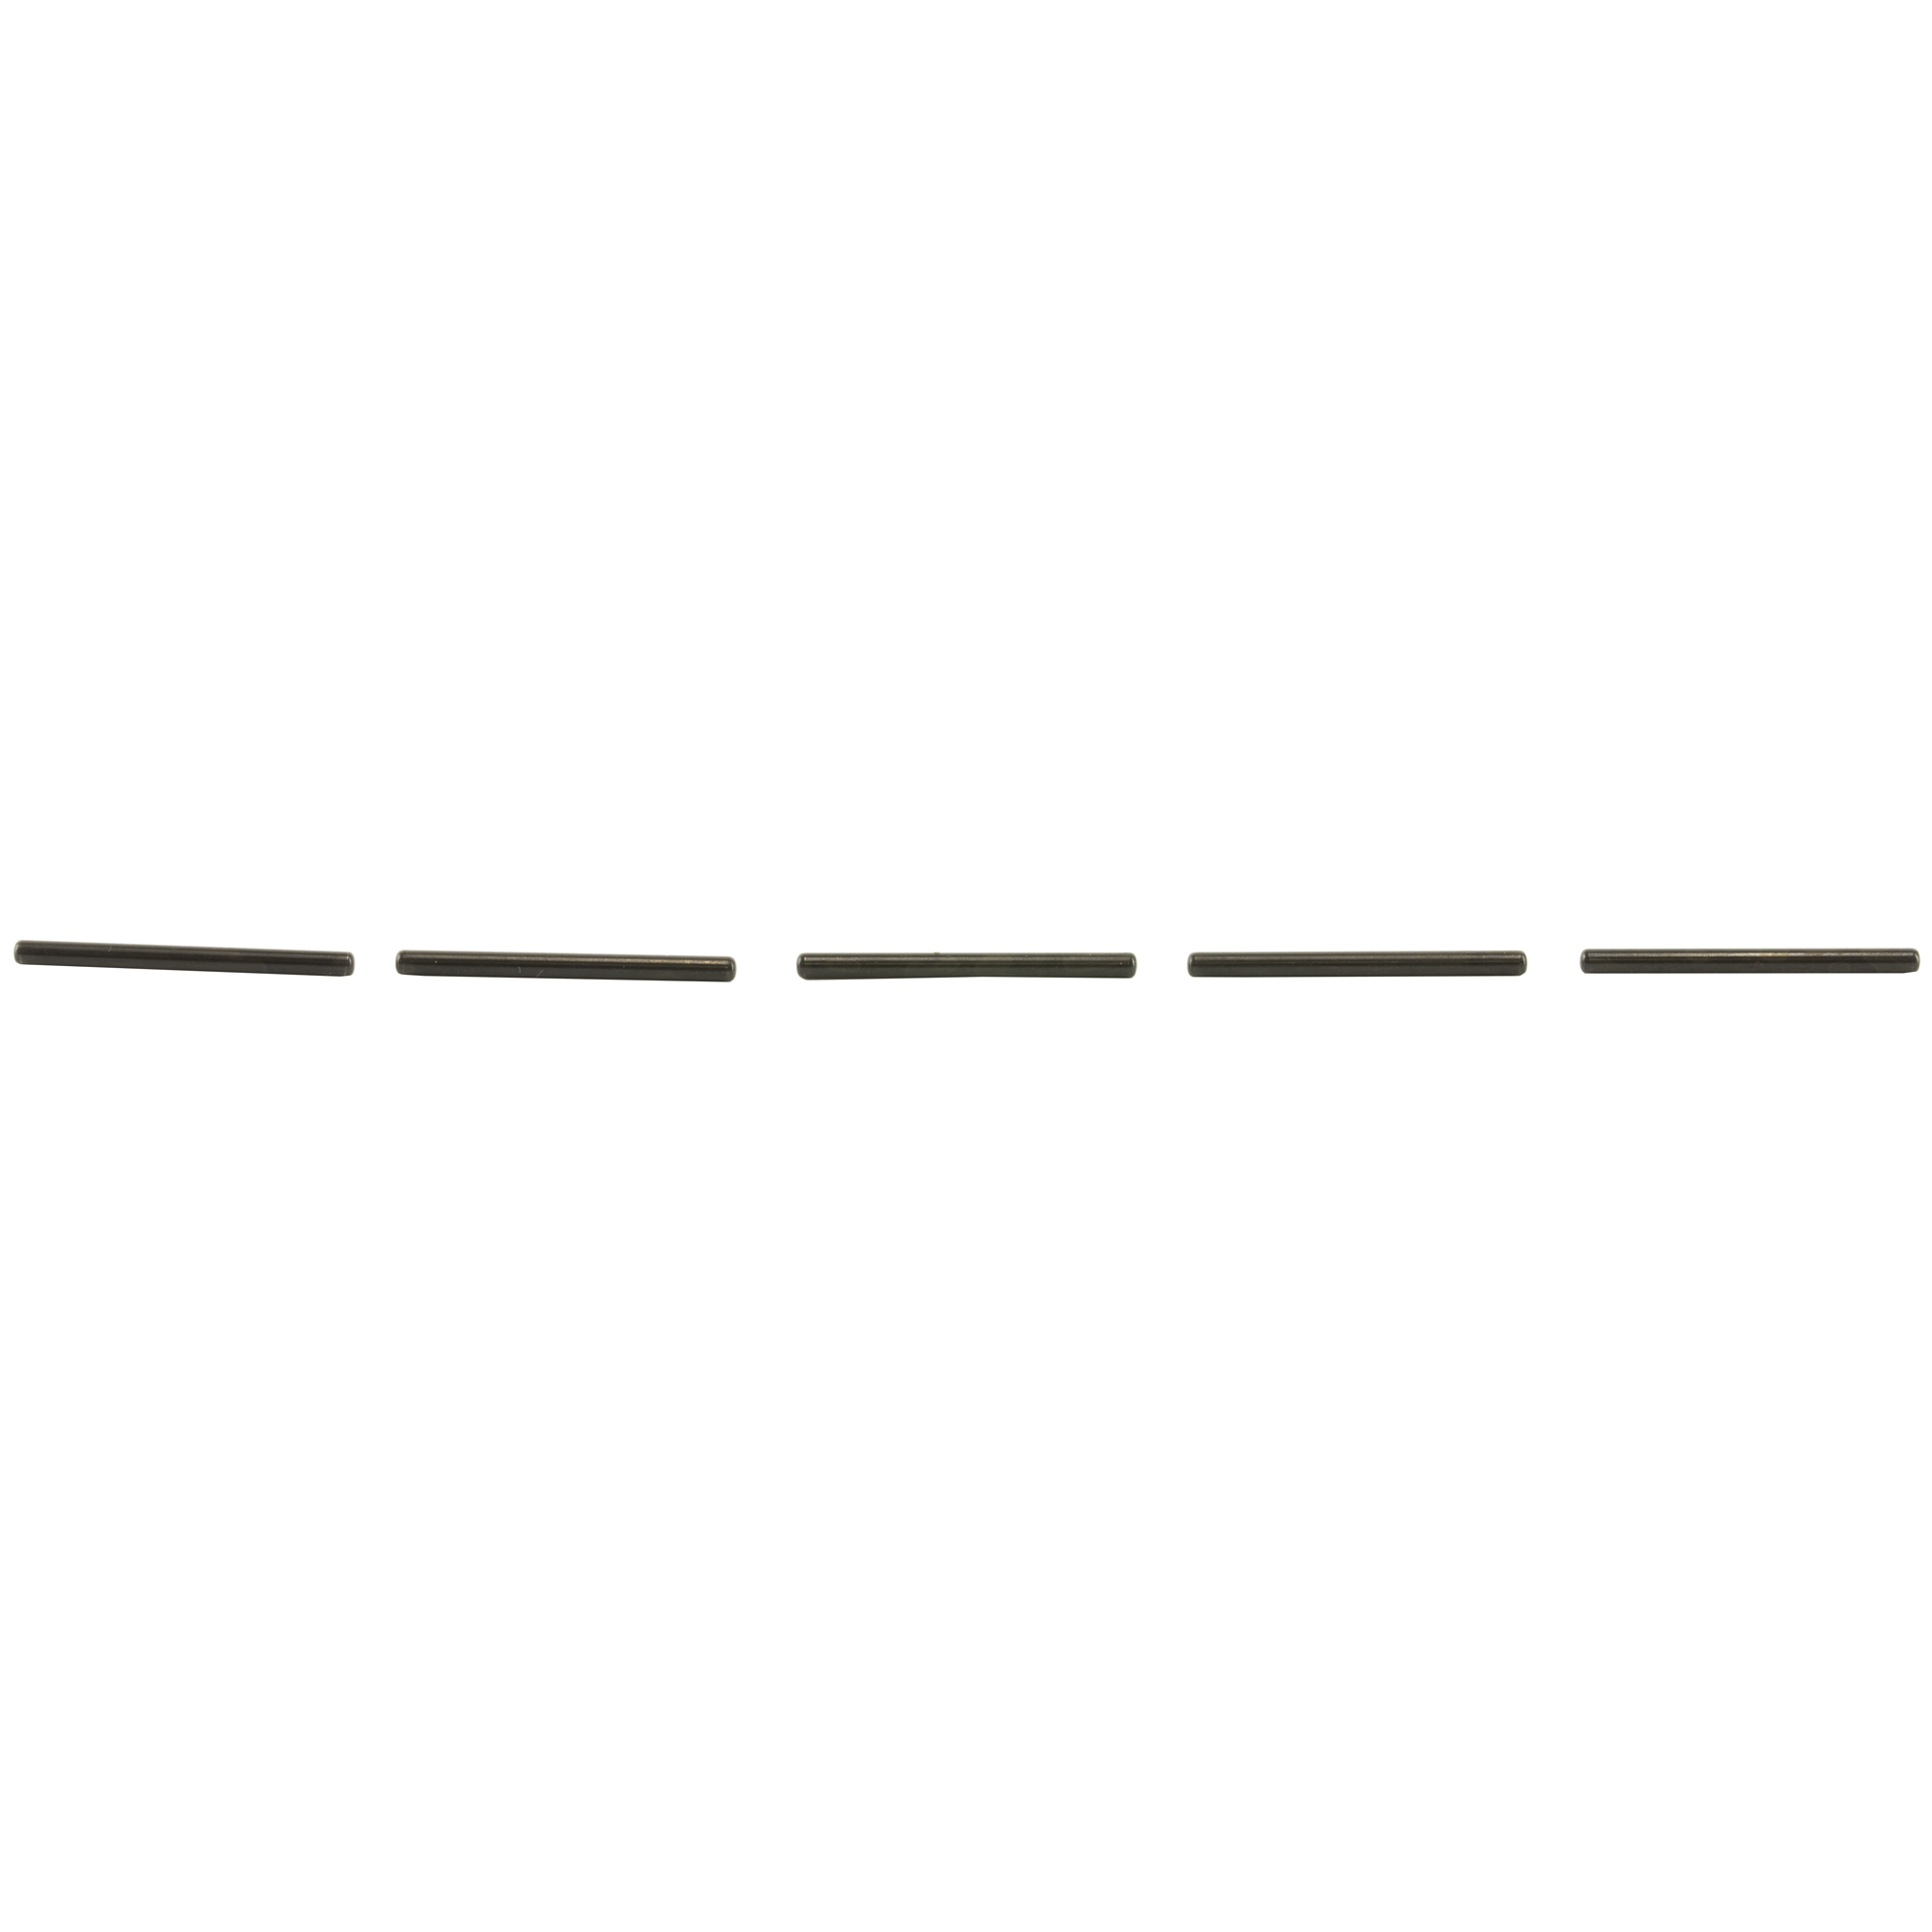 Rcbs Decapping Pin 5-pack Large